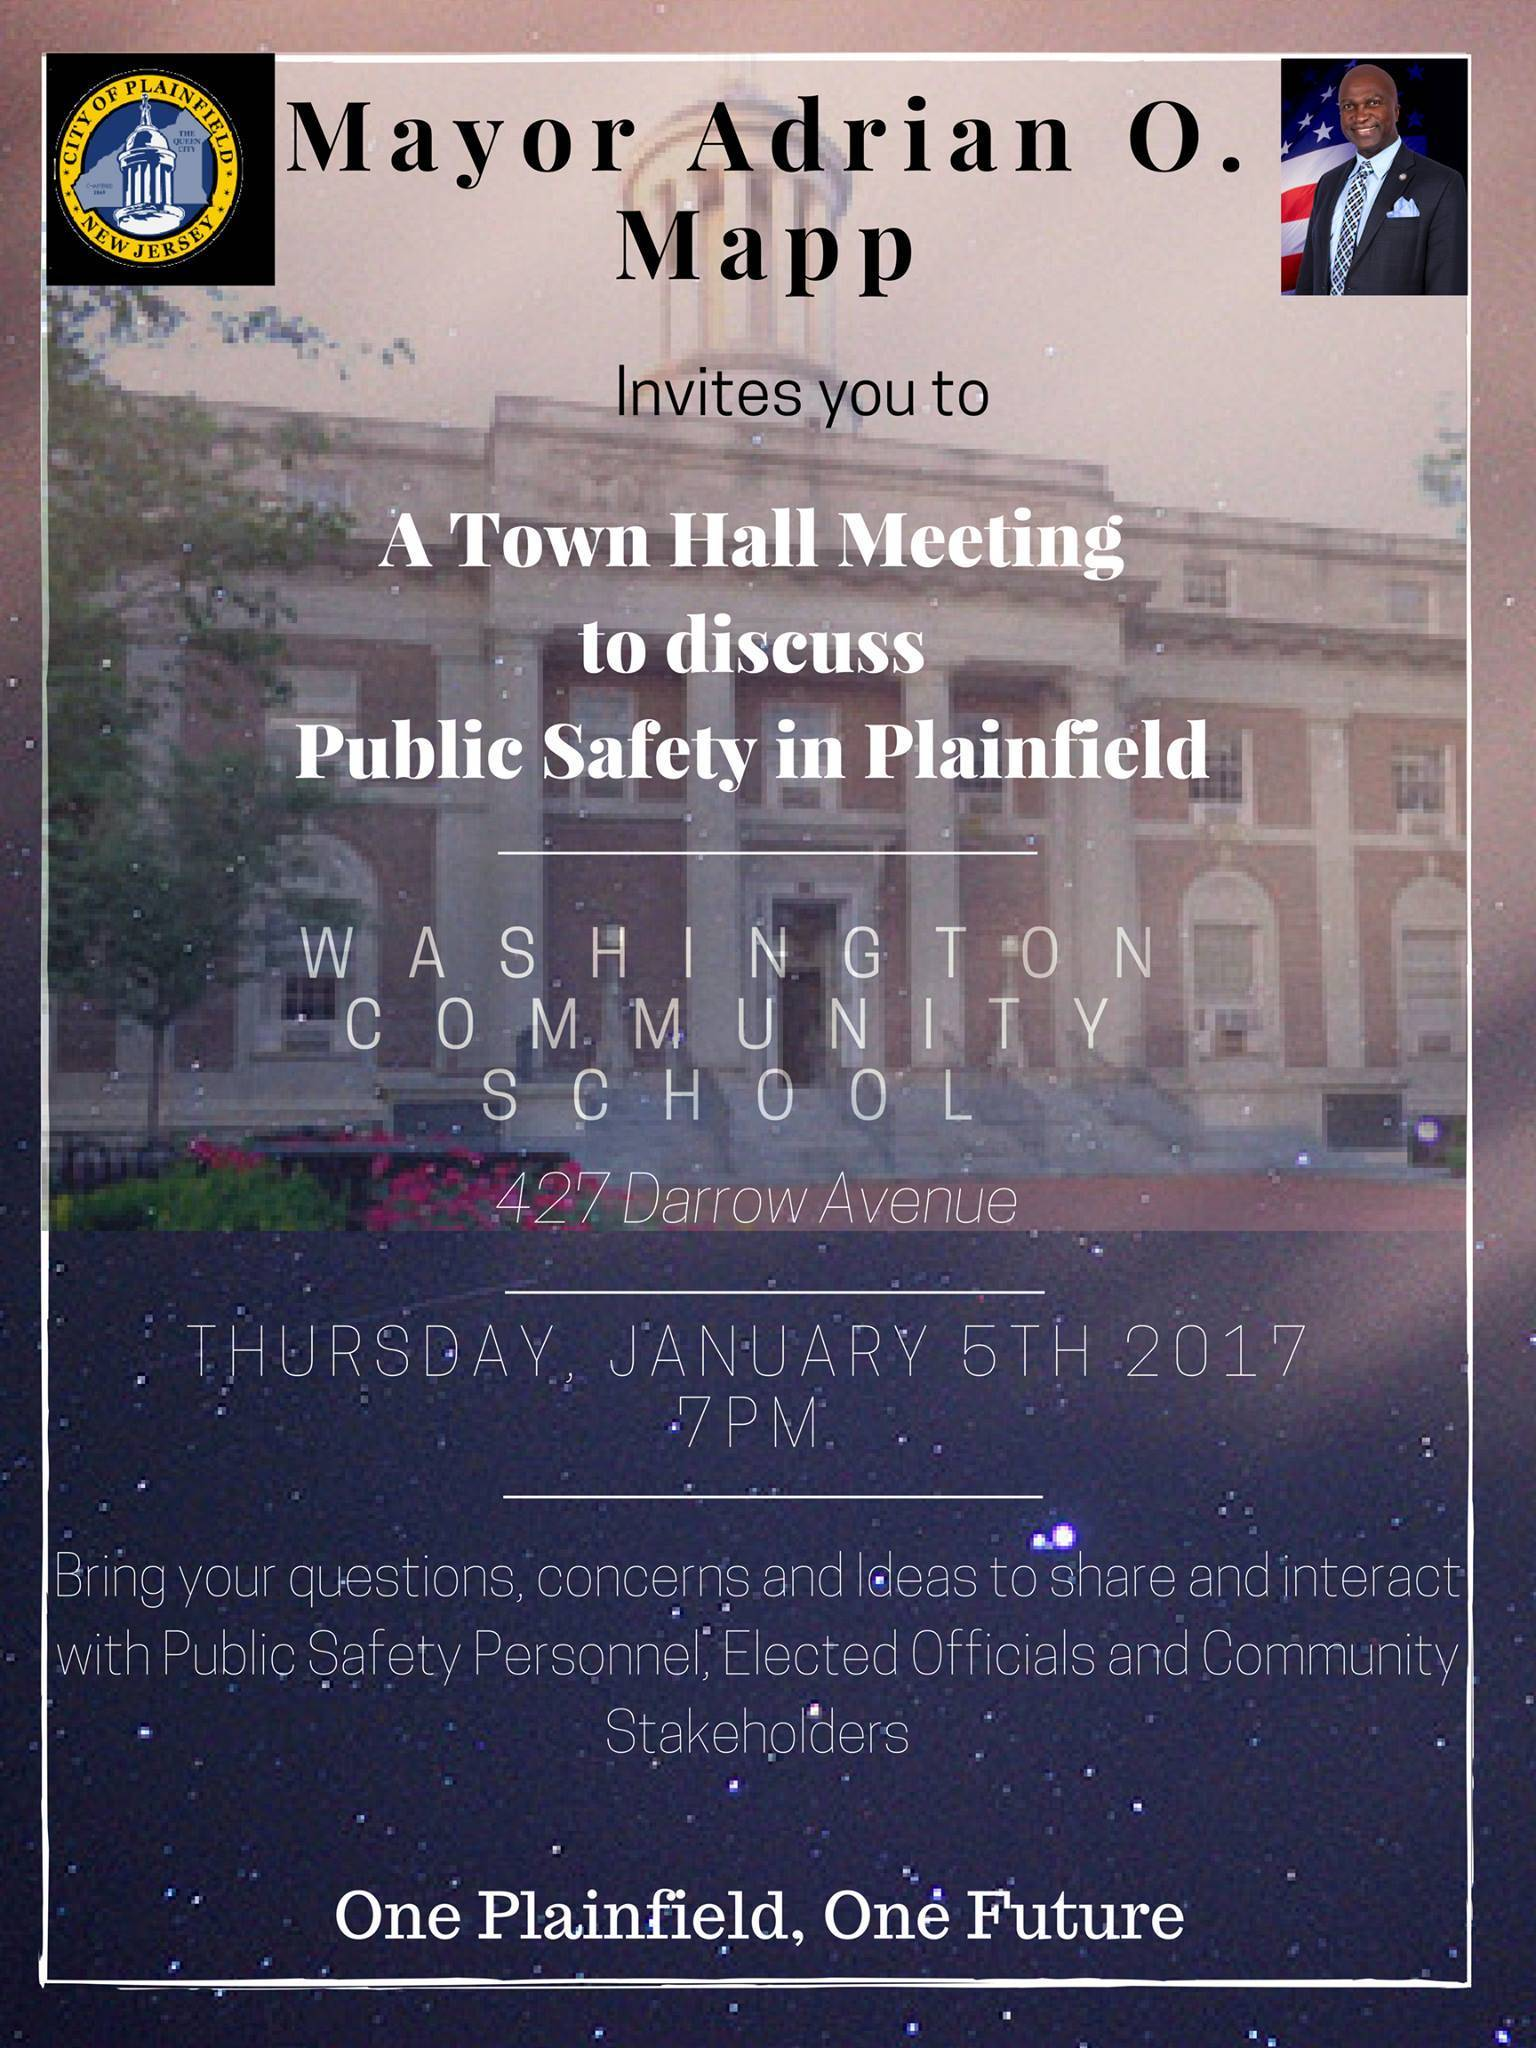 8187ffb30ef4b097ecfa_Town_Hall_Public_Safety_Meeting.jpg